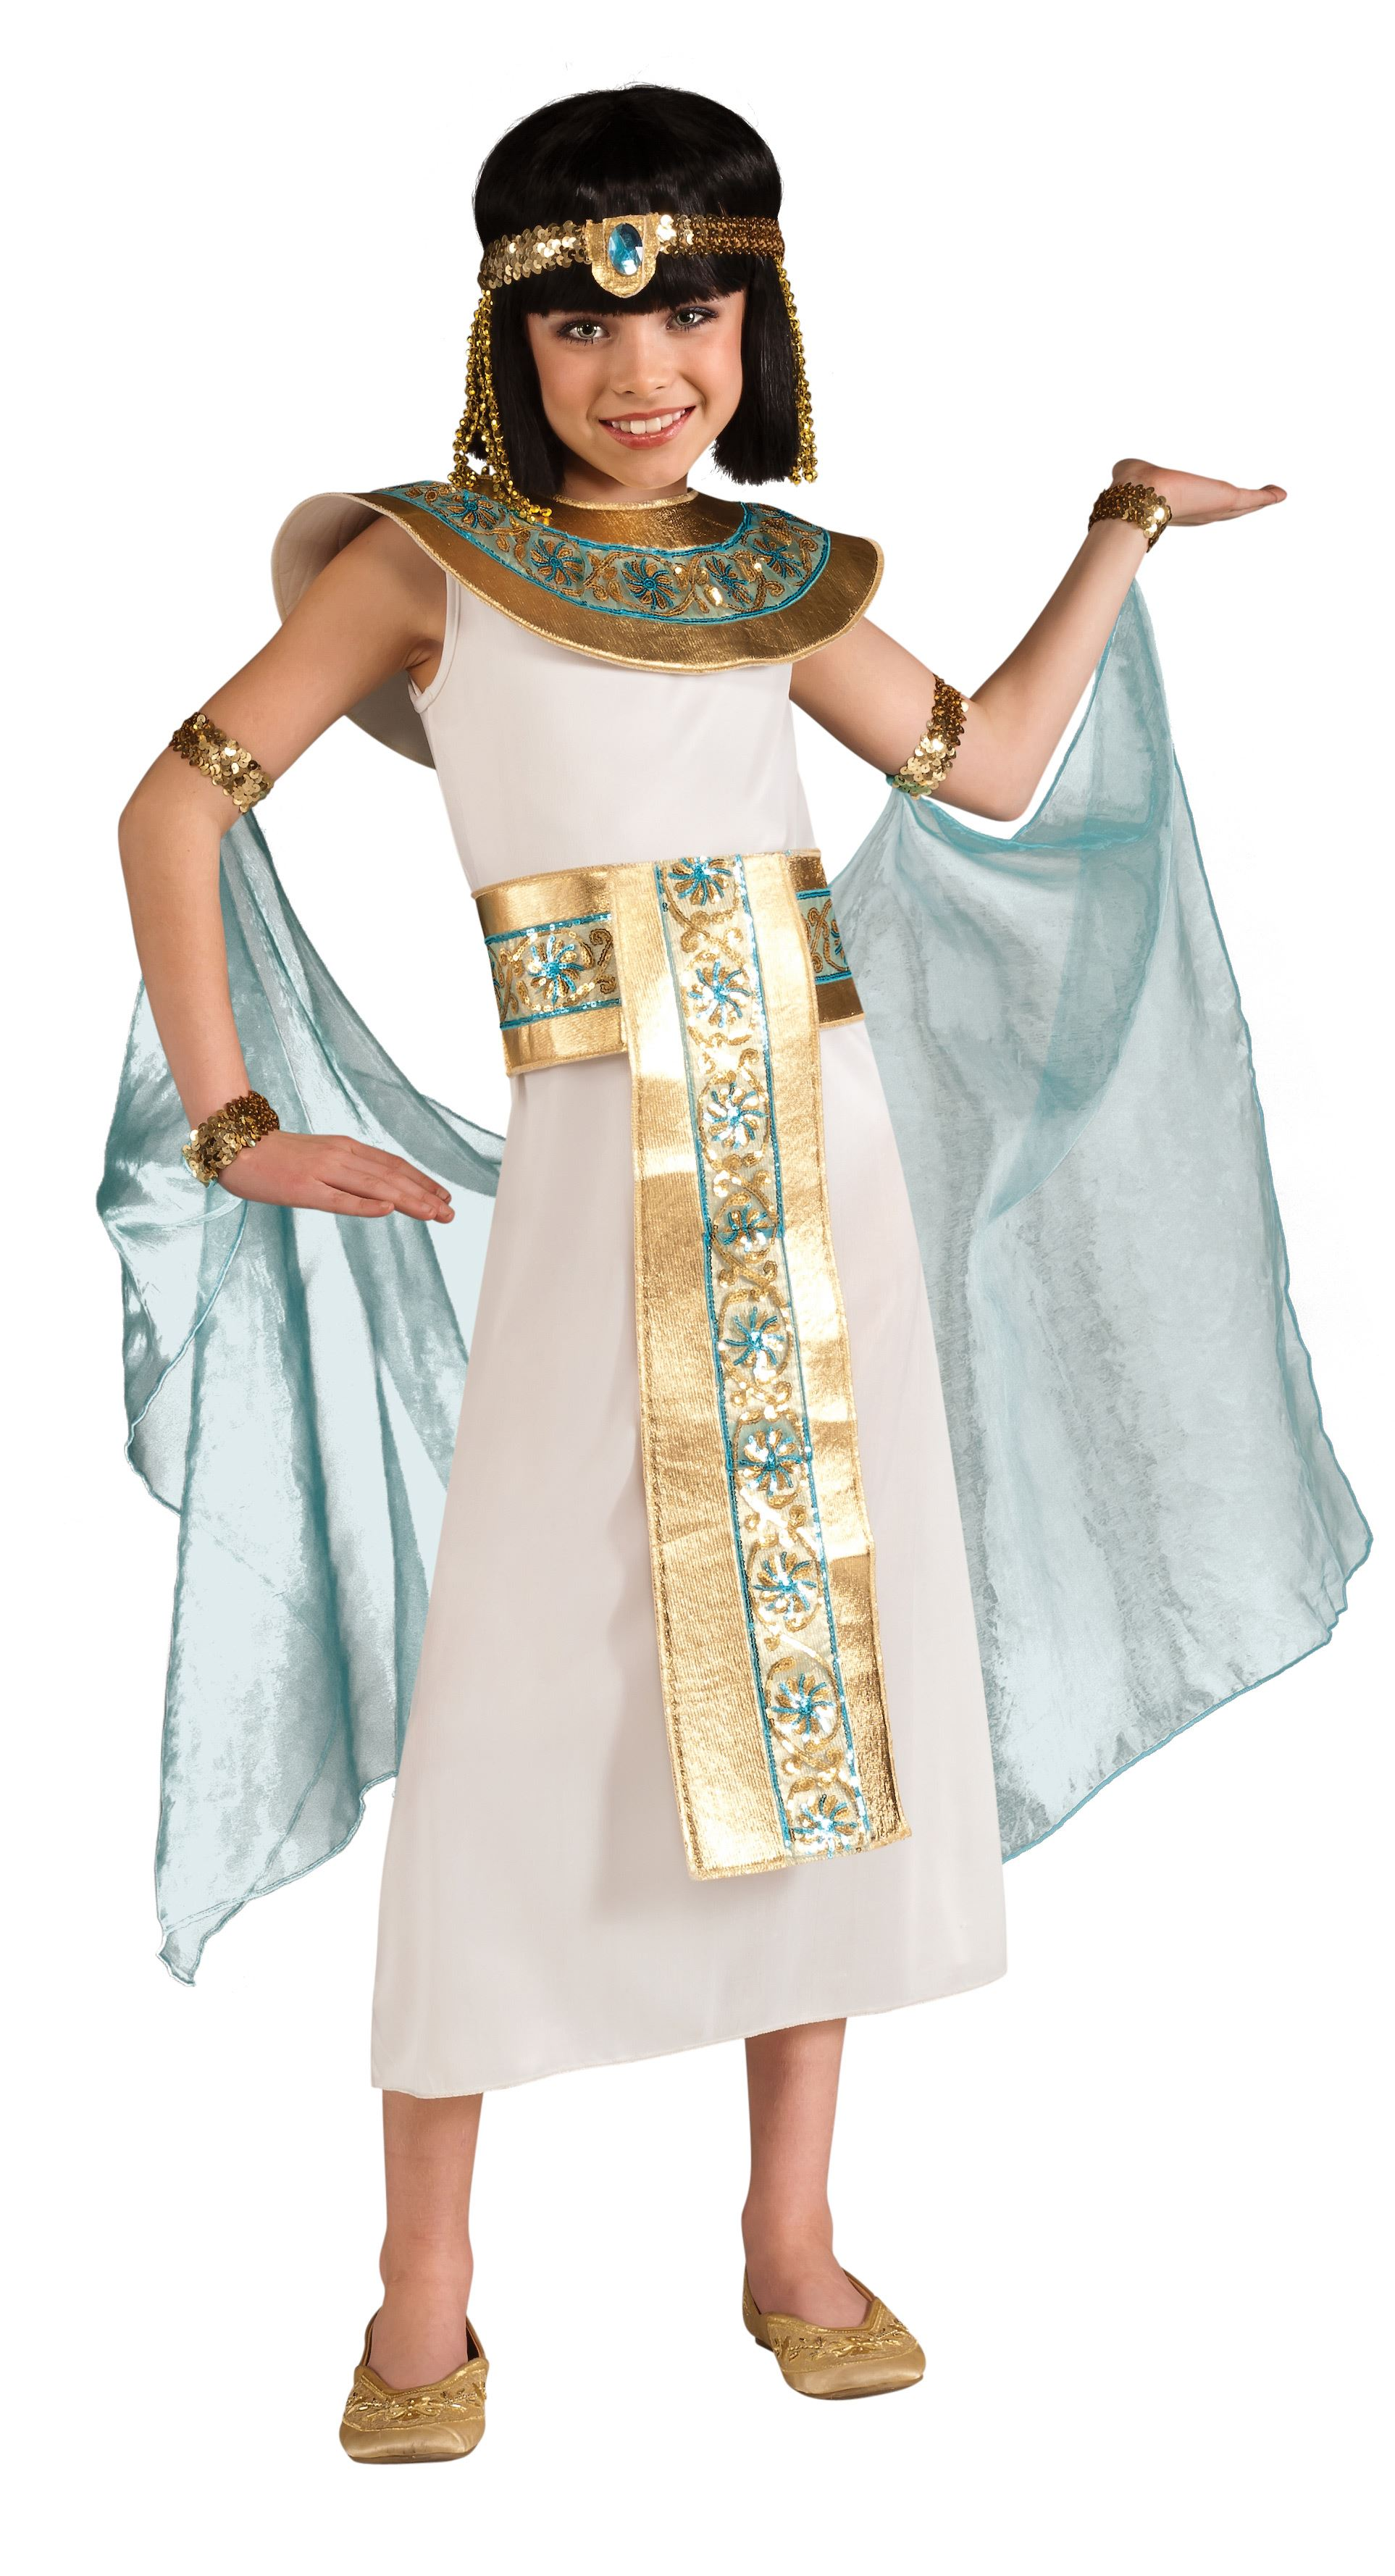 Kids Girls Cleopatra Costume  sc 1 st  The Costume Land & Kids Girls Cleopatra Costume | $24.99 | The Costume Land